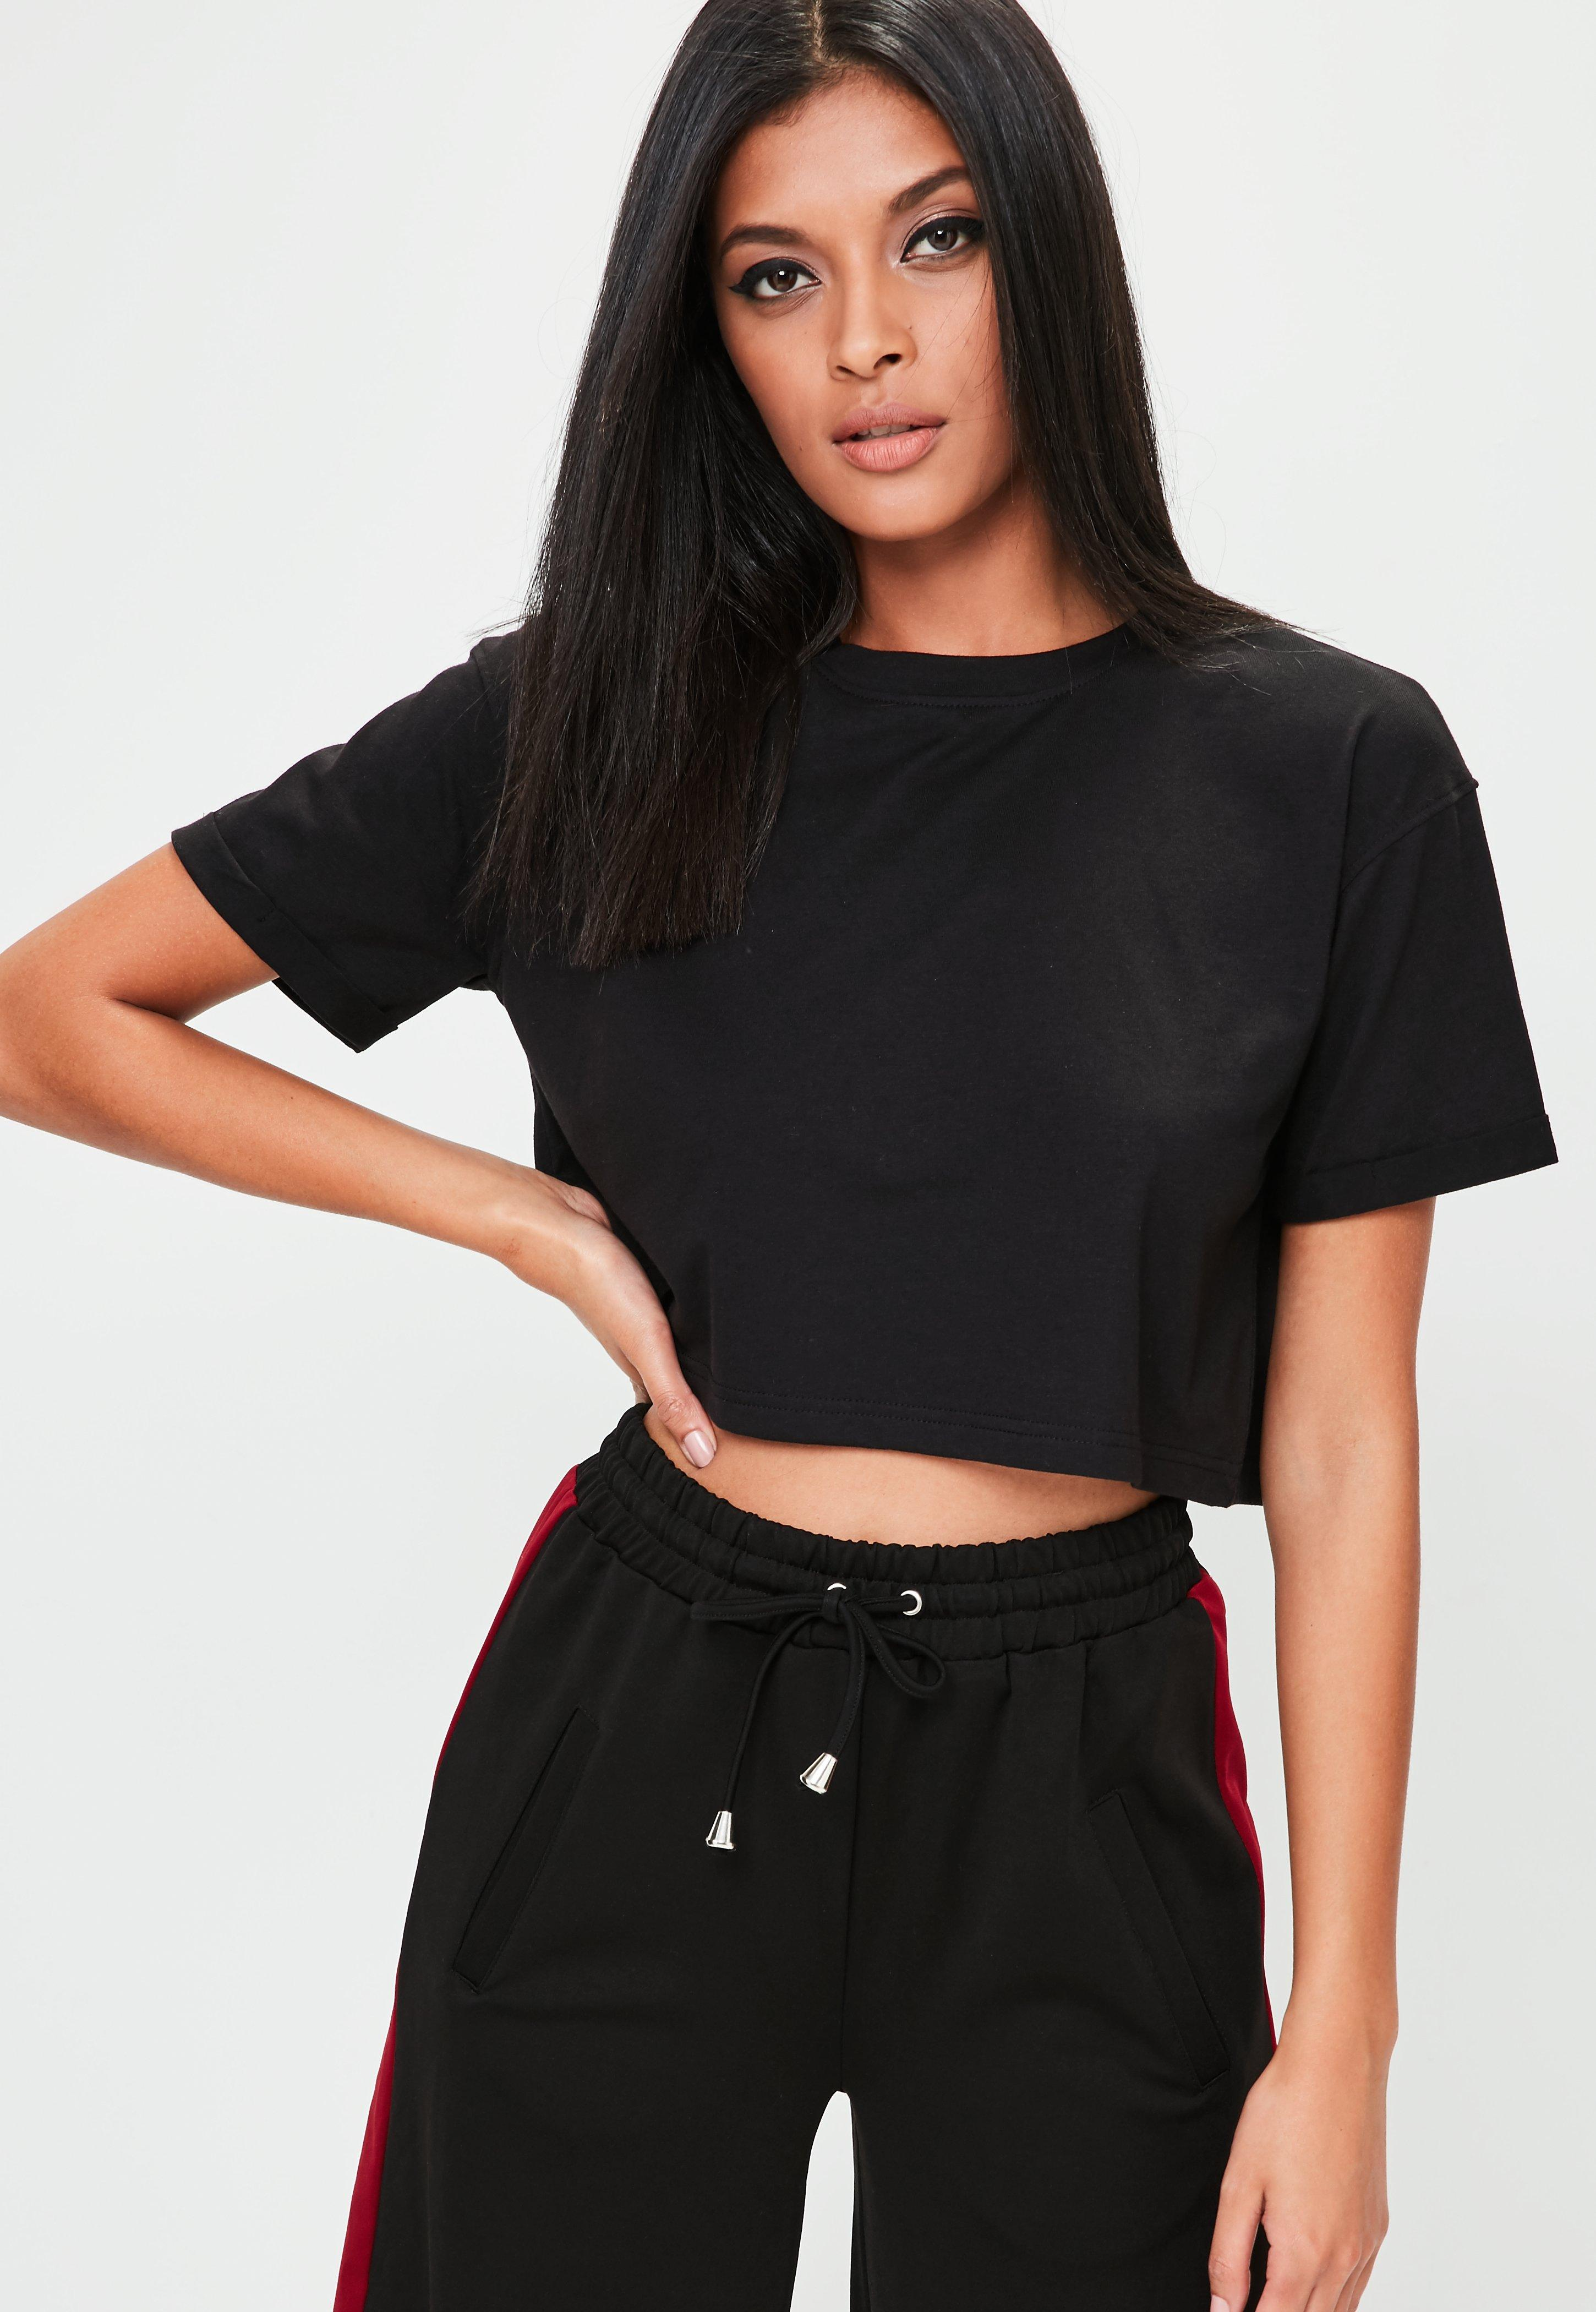 Image result for black tee shirt crop top